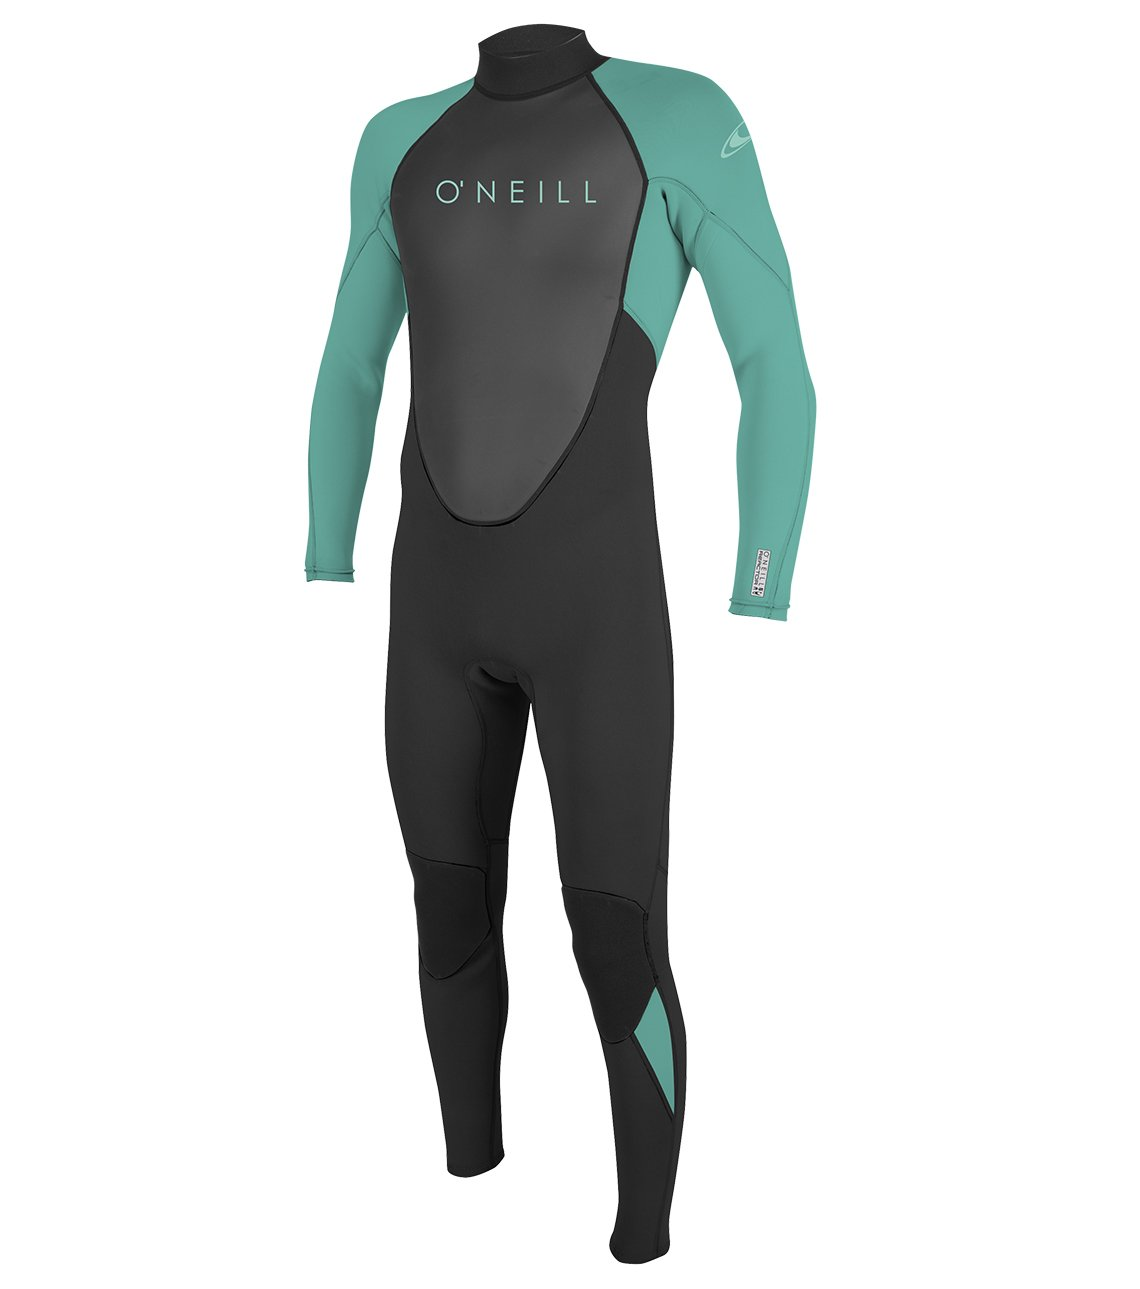 O'Neill Youth Reactor-2 3/2mm Back Zip Full Wetsuit, Black/Aqua, 4